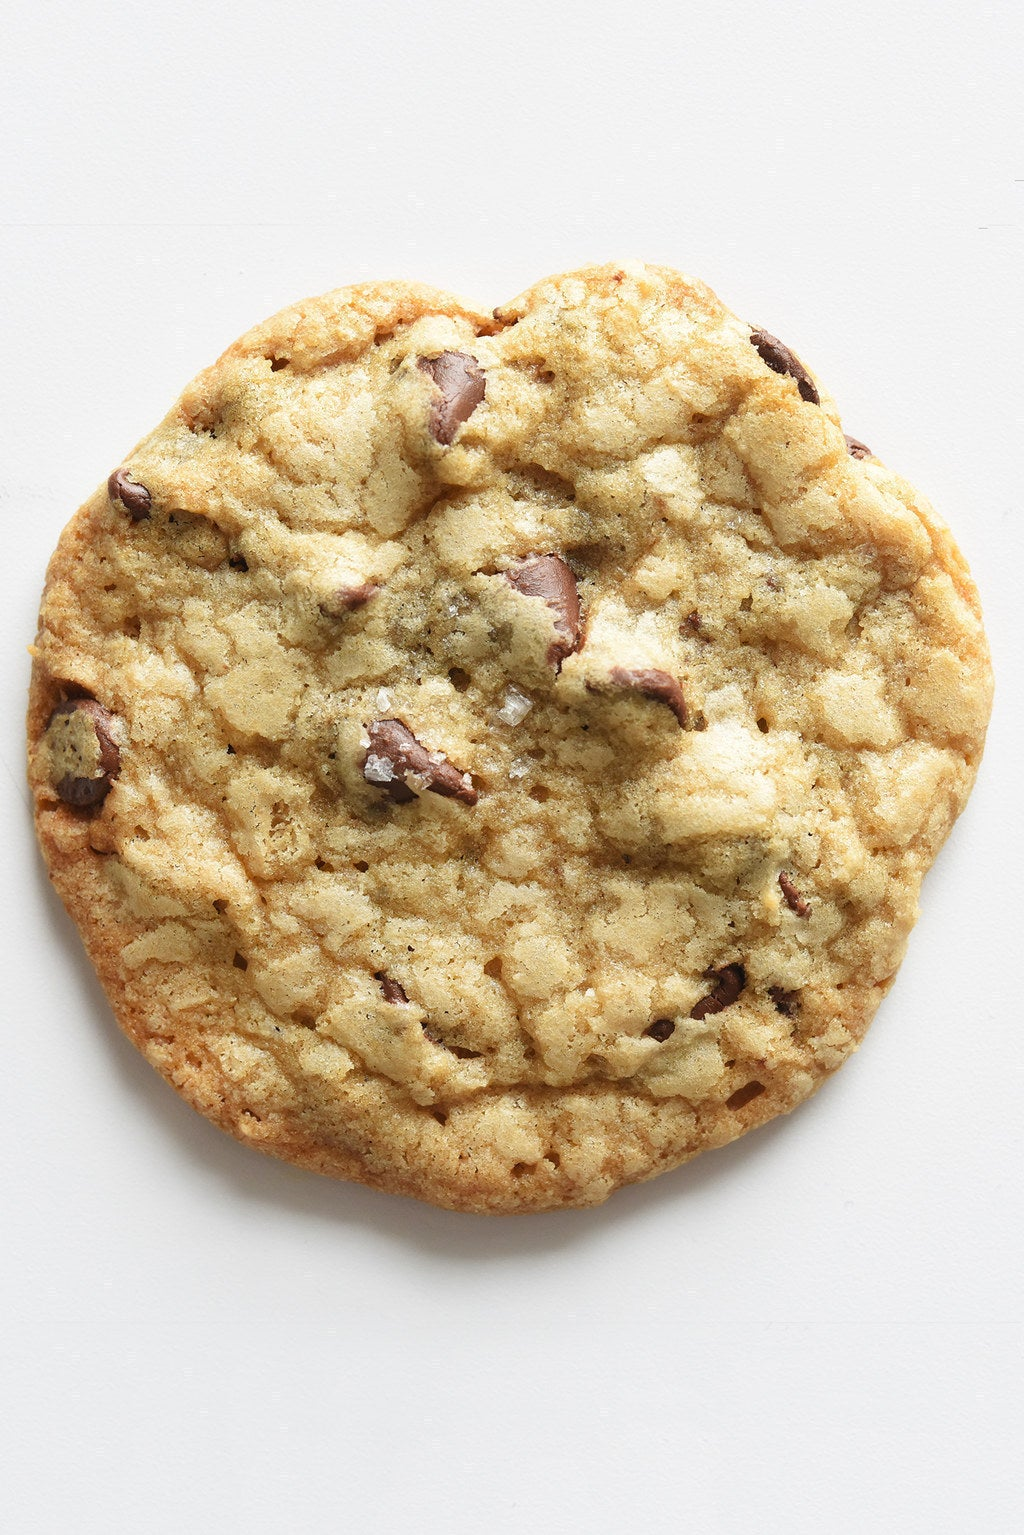 How To Make Tasty Bakery-Style Chocolate Chip Cookies